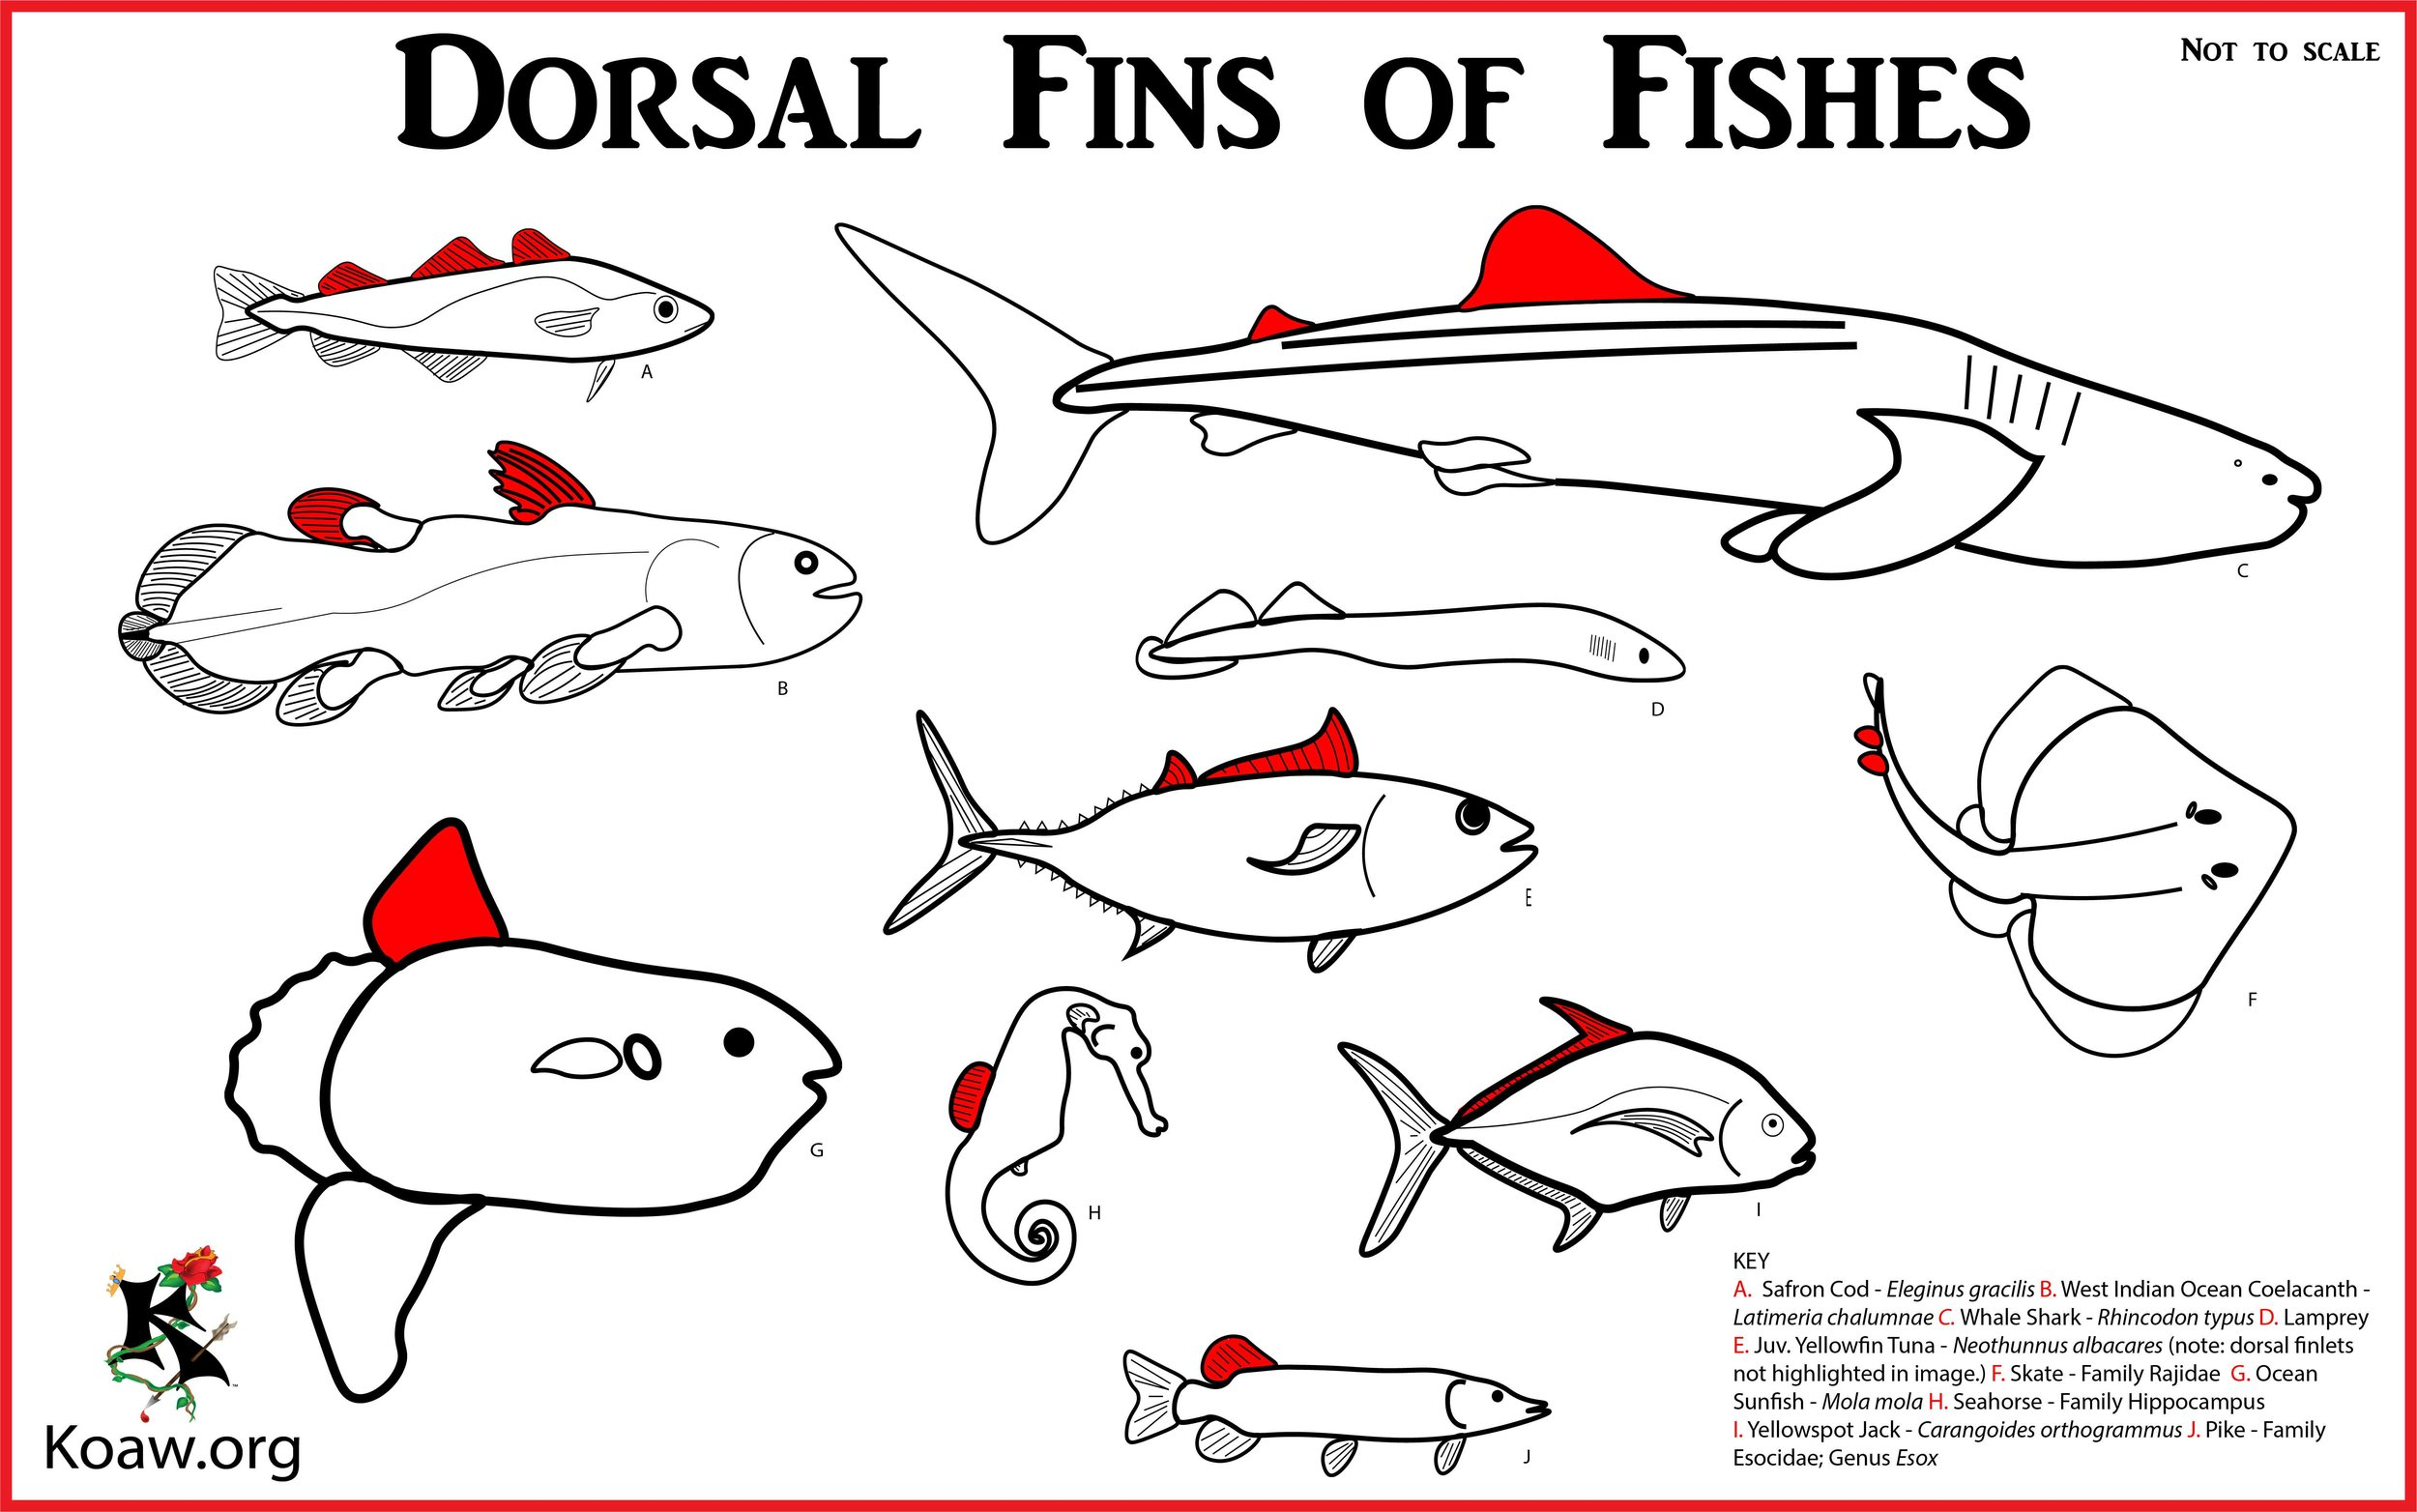 Dorsal Fins o Fishes - Illustration by Koaw